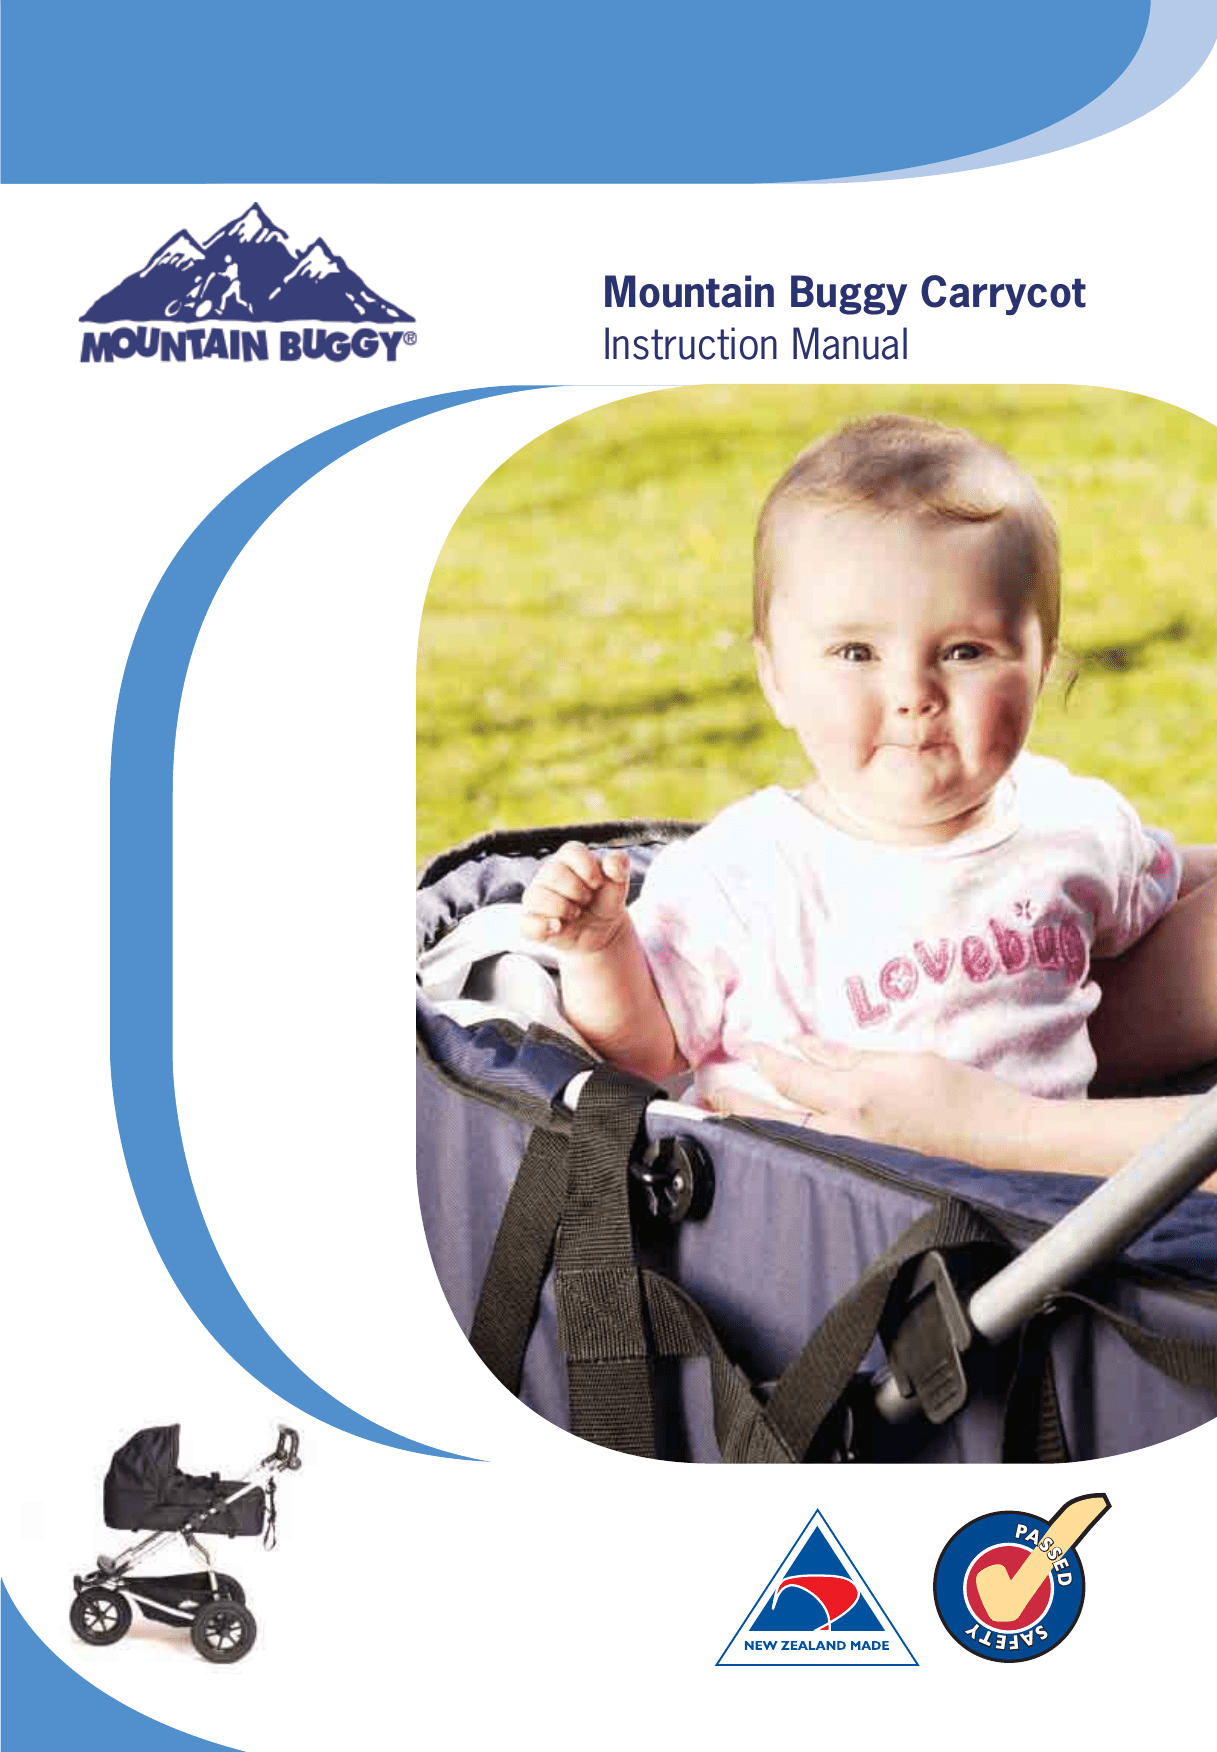 Doppel Kinderwagen Urban Jungle Mountain Buggy Carrycot Users Manual Mountian Outside Cover